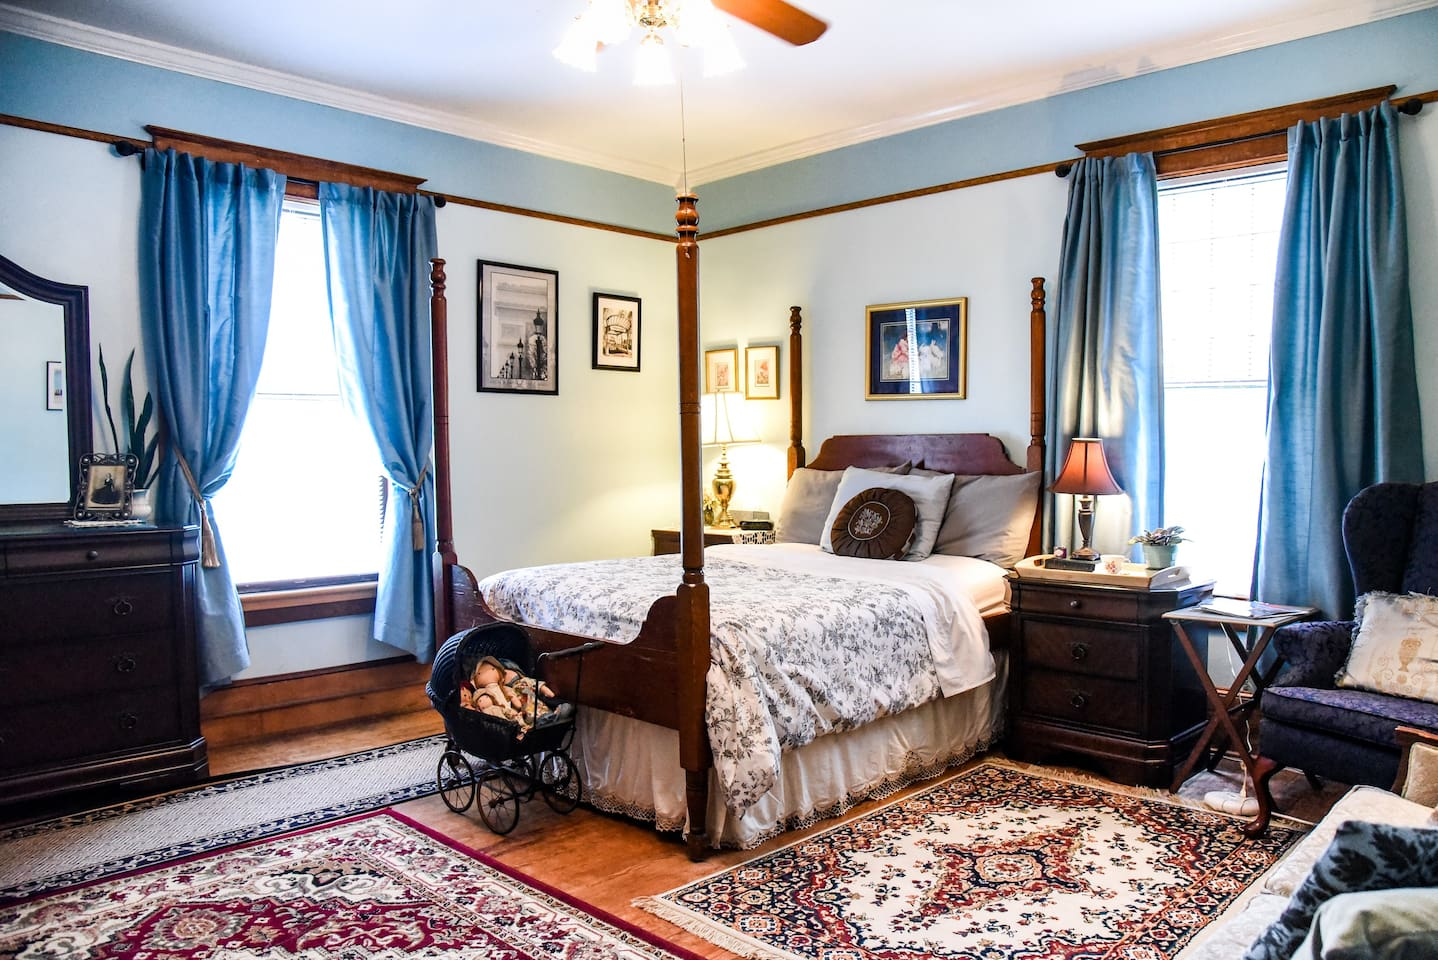 Spacious room upstairs in a historic 100 yr old home, furnished with antiques, located about a mile from Old Salem, downtown and many colleges.